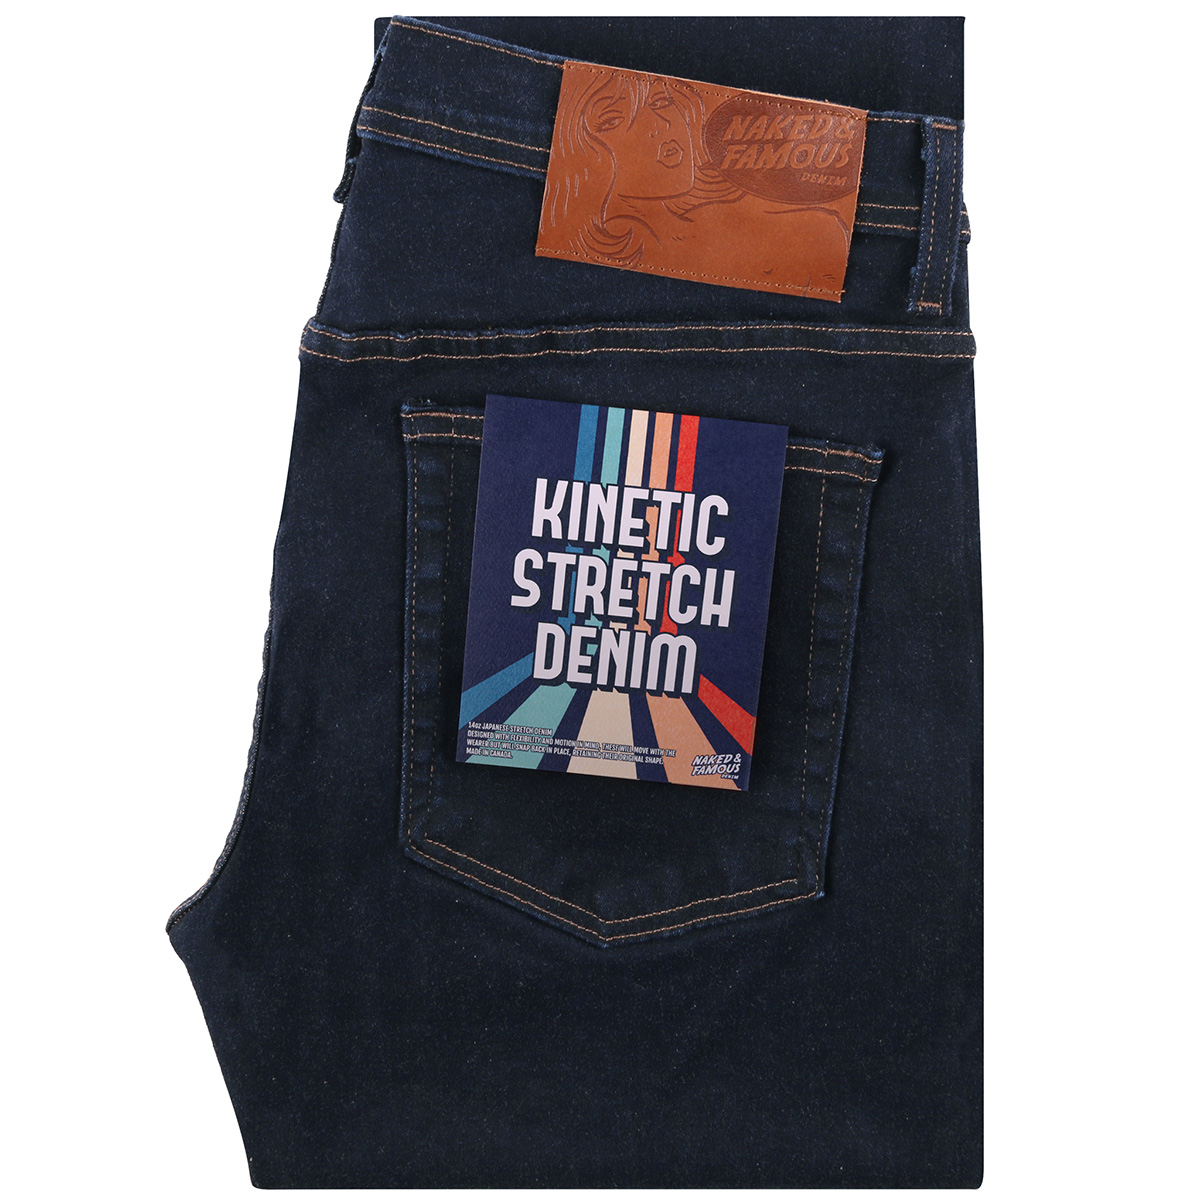 KINETIC STRETCH DENIM - Super Guy / Weird Guy / Easy Guy